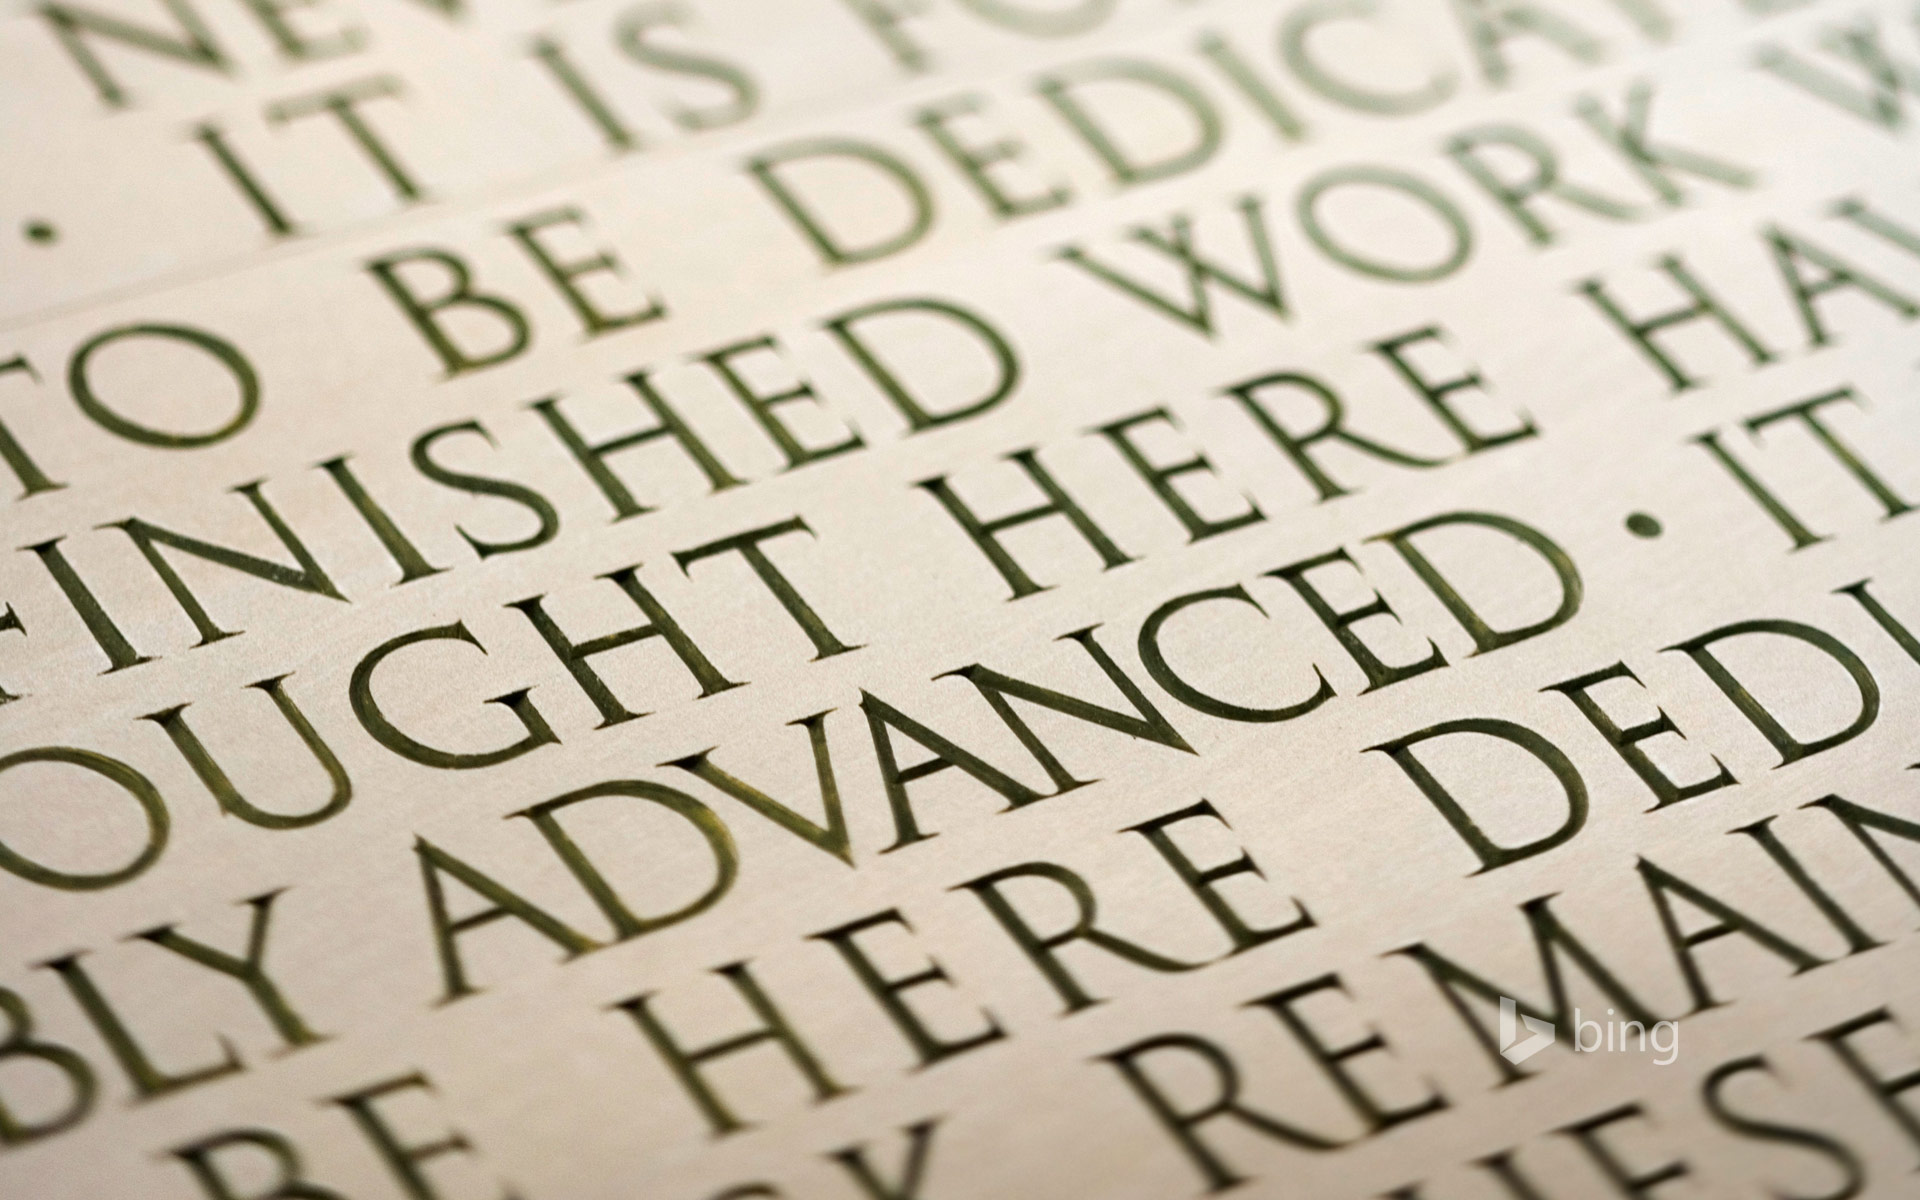 Engraving of the Gettysburg Address at the Lincoln Memorial, Washington, D.C.